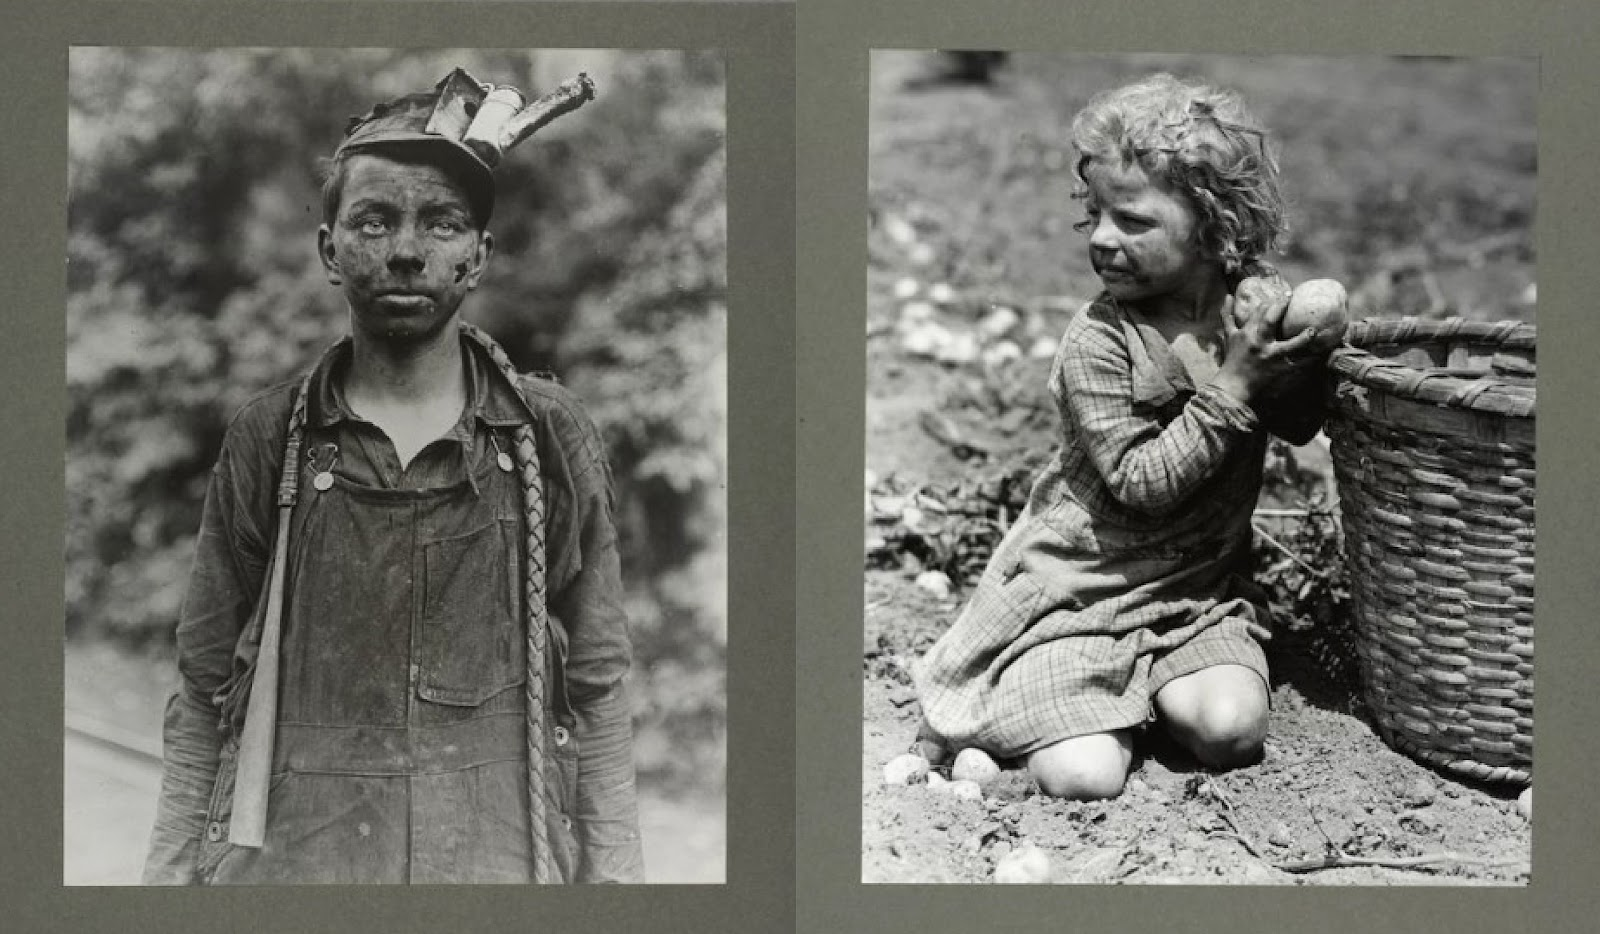 a history of child labor About lewis hine, the investigative photographer for the national child labor beareau from 1908-12.